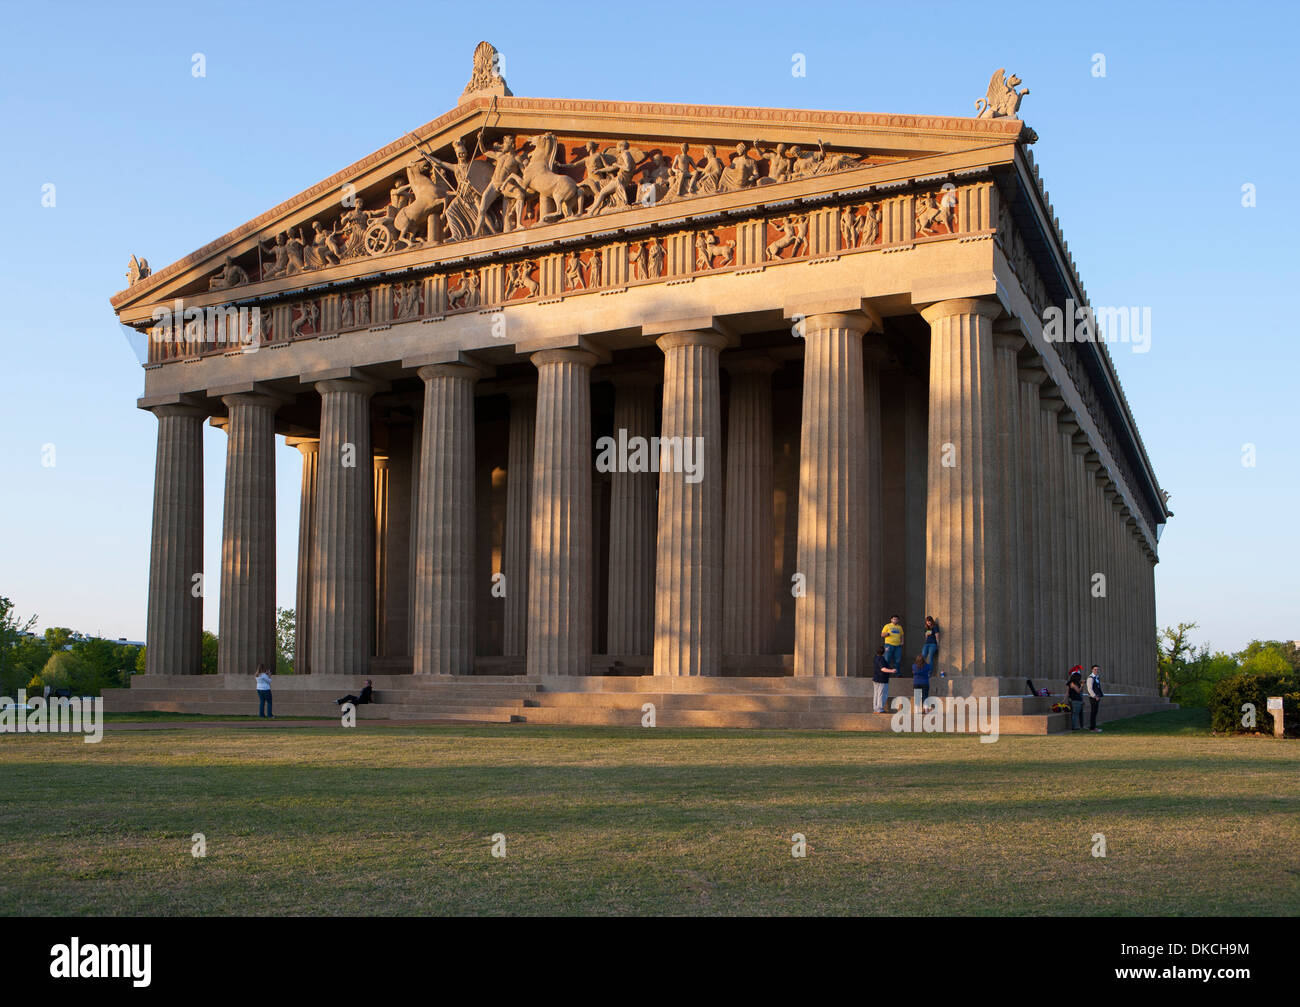 In Nashville Tennessee stands a full-scale replica of the original Parthenon in Athens. It was built in 1897. - Stock Image